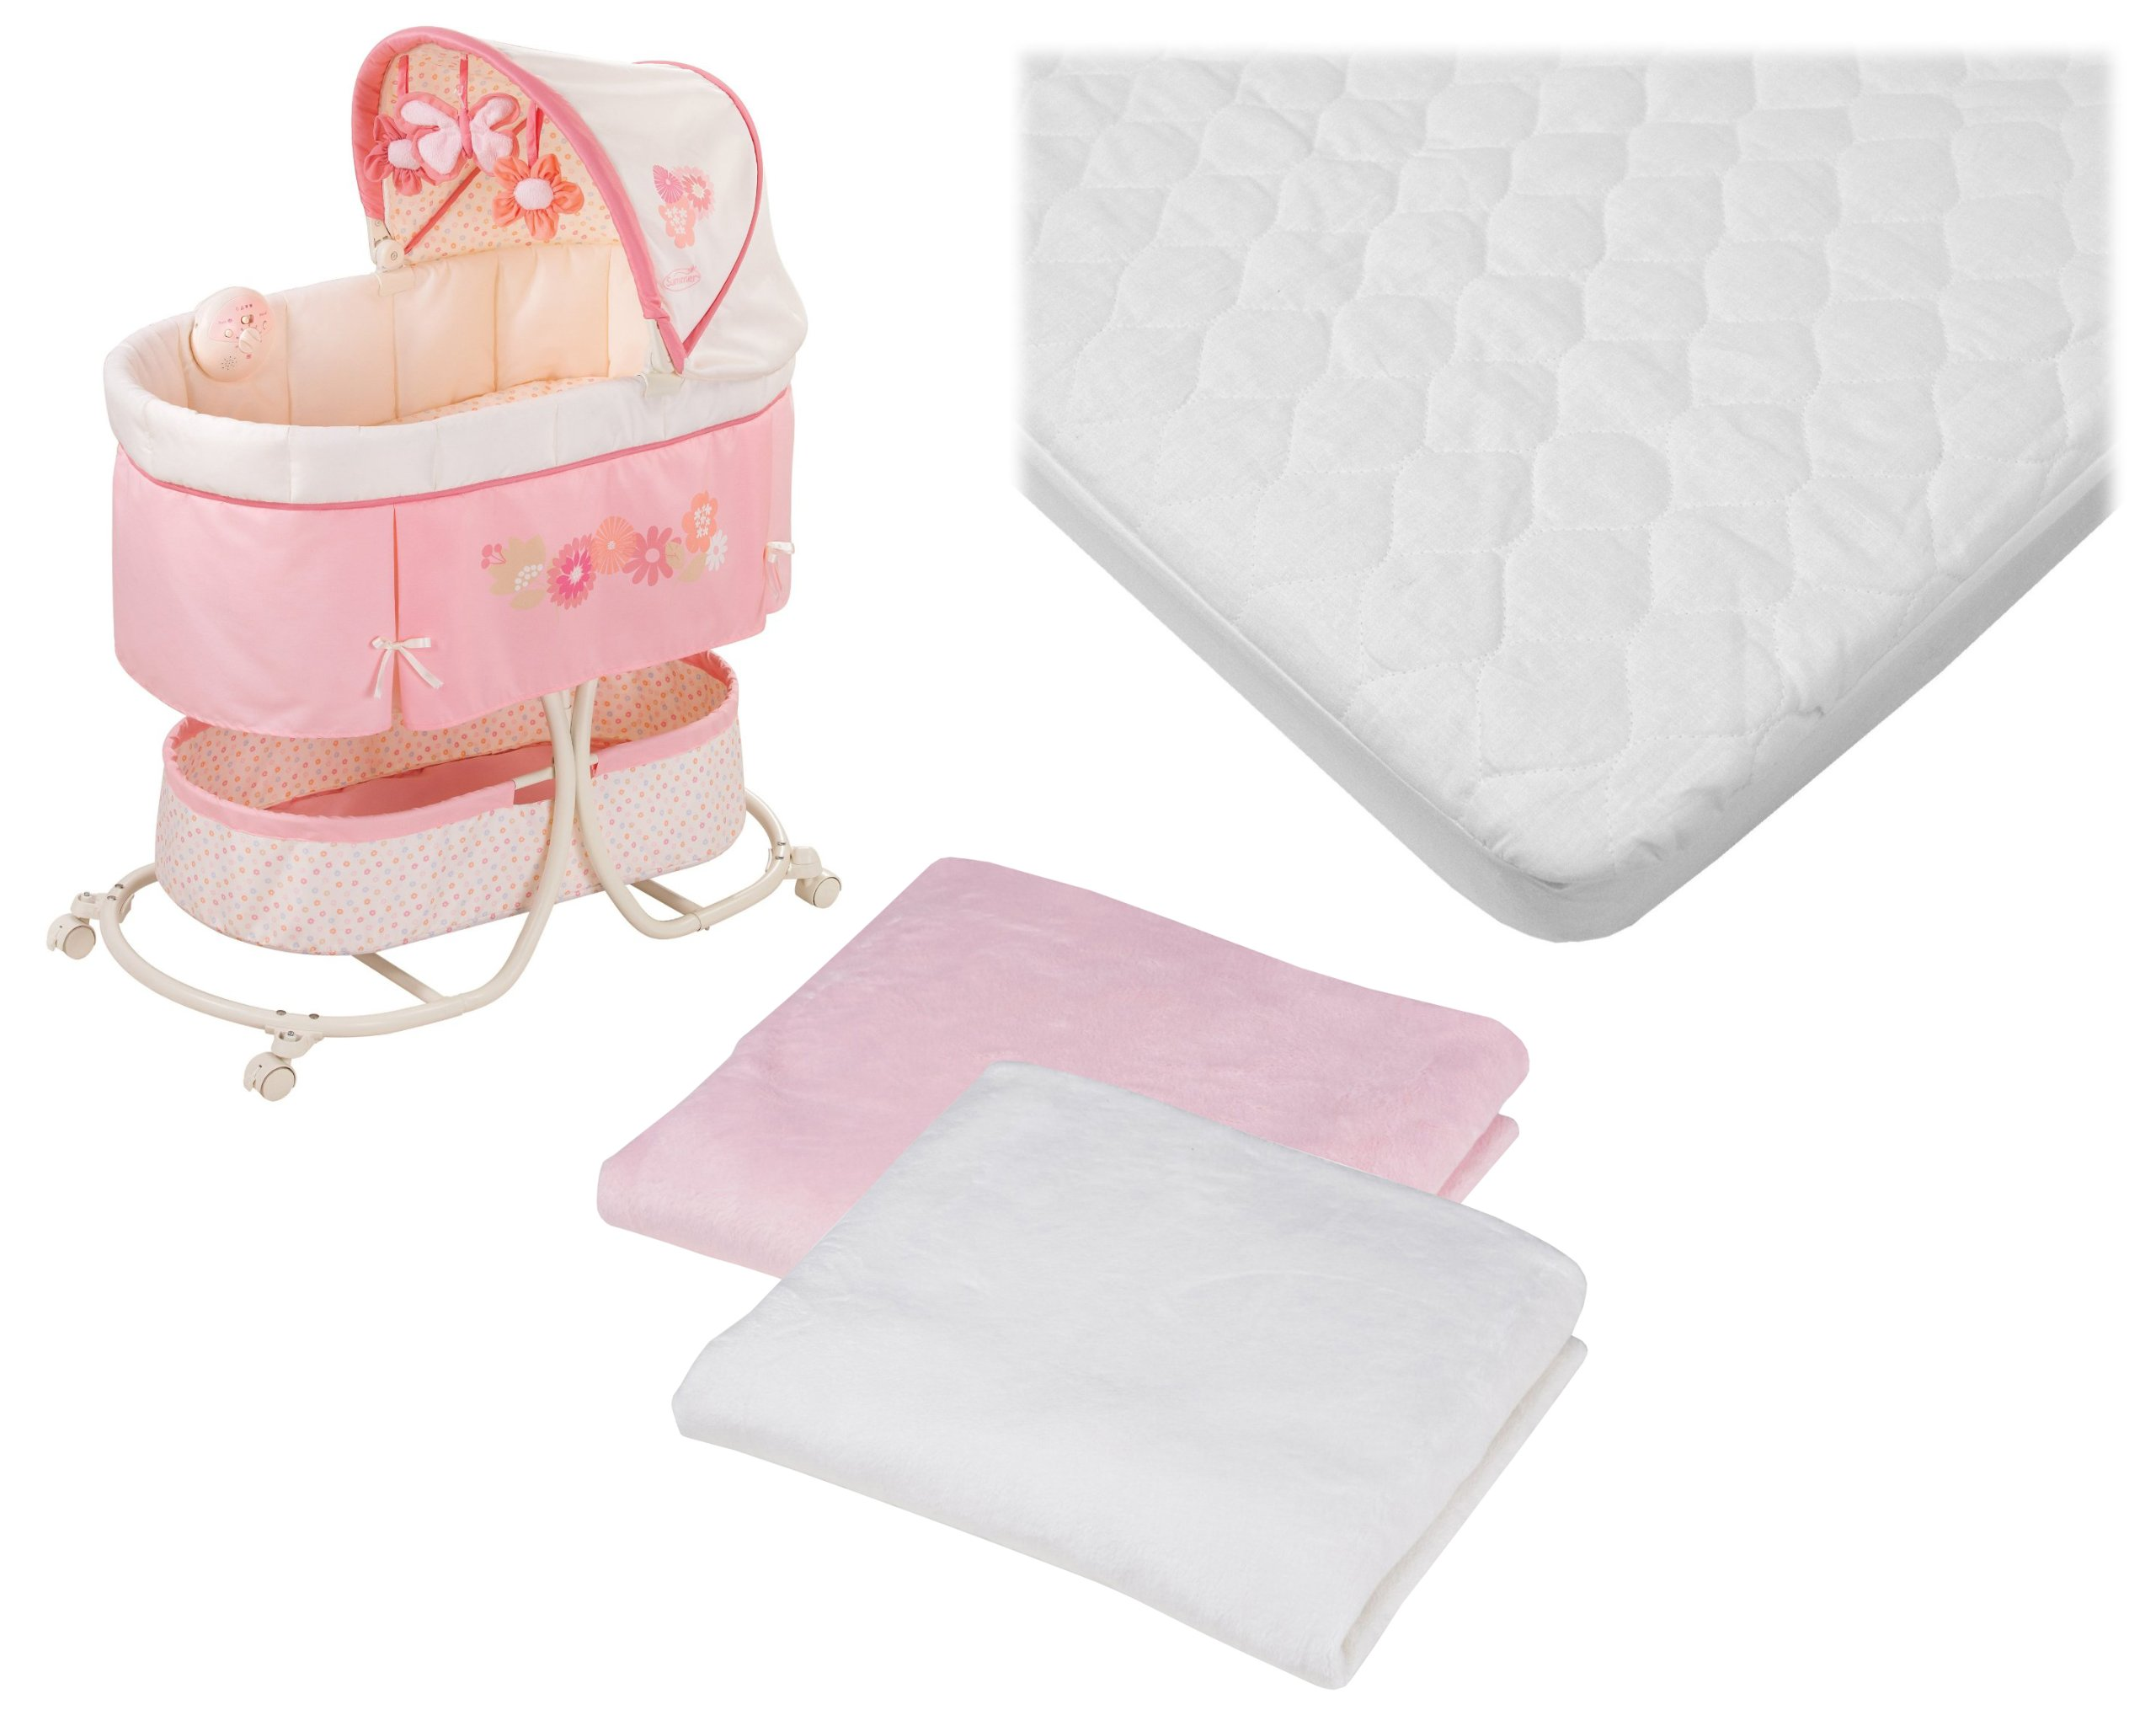 Summer Infant Soothe & Sleep Motion Bassinet with Waterproof Mattress Pad & Extra Chenille Sheets